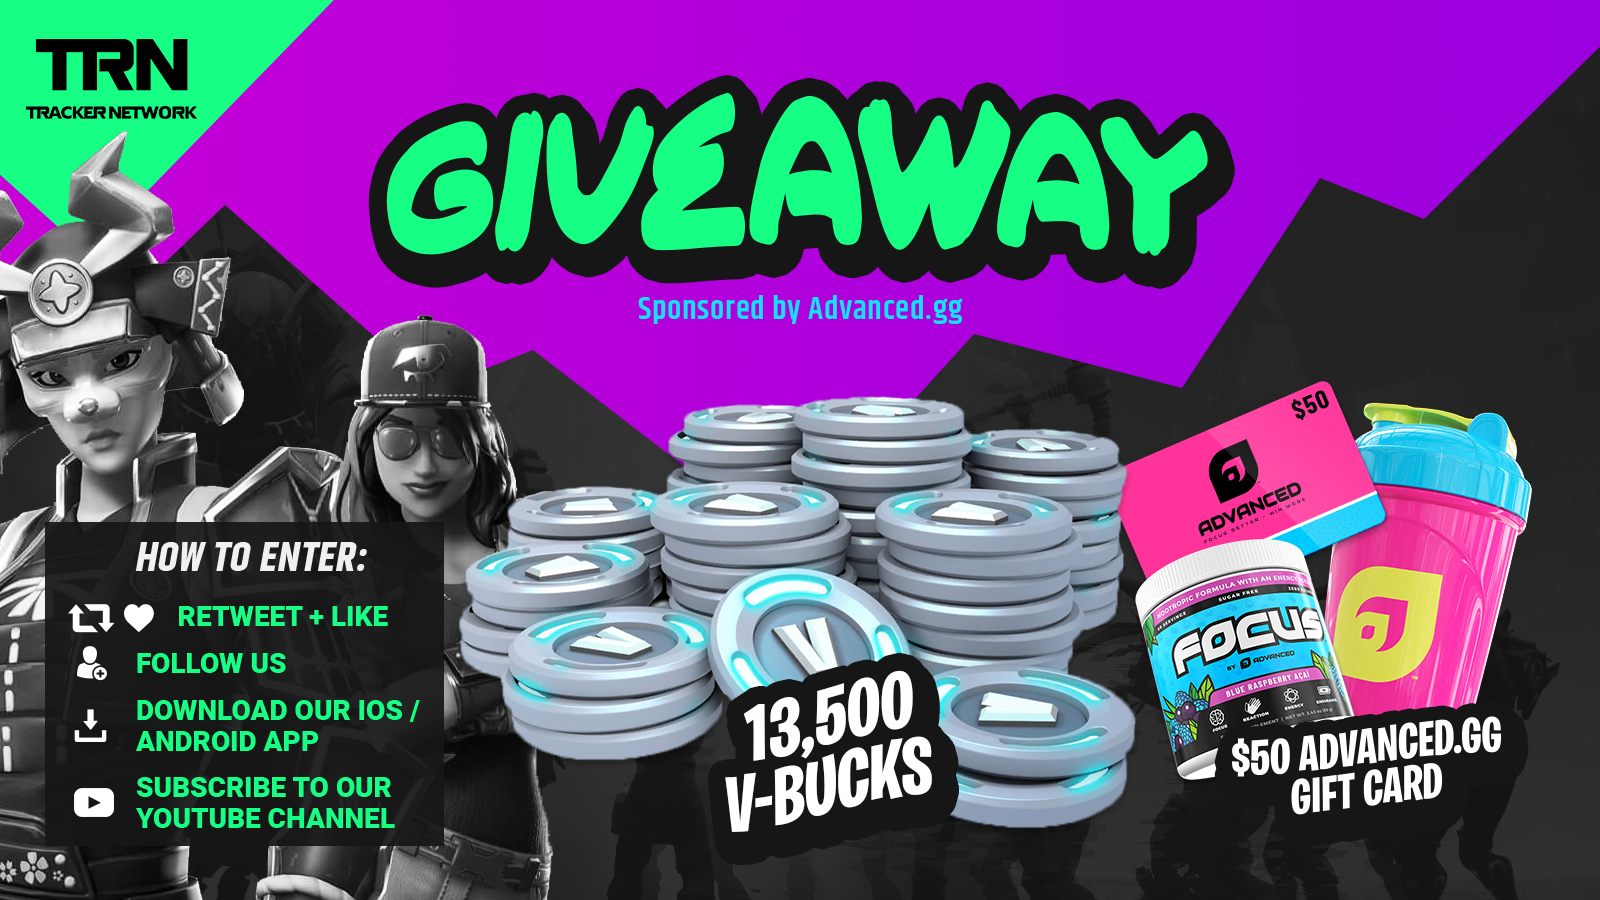 FORTNITE TRACKER GIVEAWAY (May/June 2019) Giveaway Image